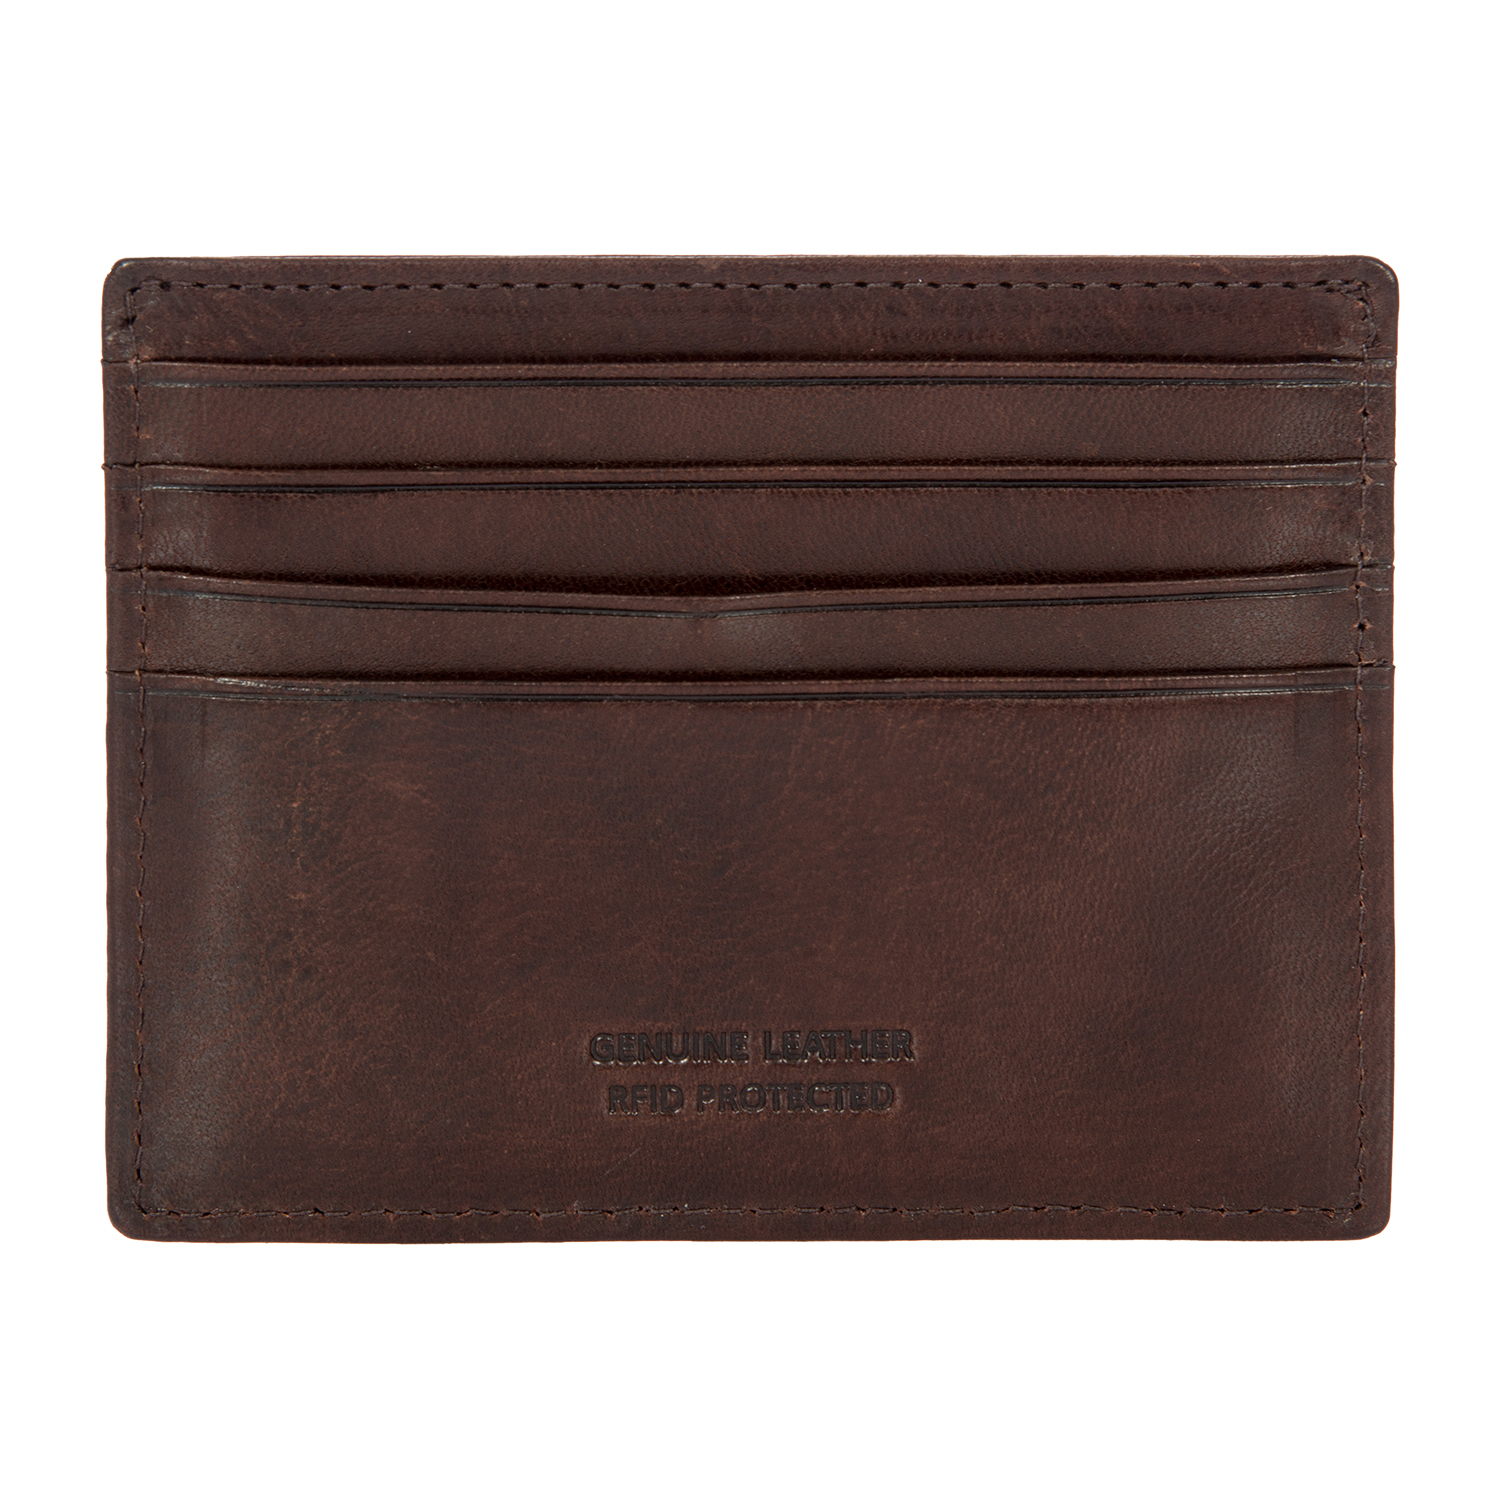 c6d20ac37f49e Buy Bric s Monte Rosa RFID Card Holder (Dark Brown) in Singapore   Malaysia  - The Wallet Shop